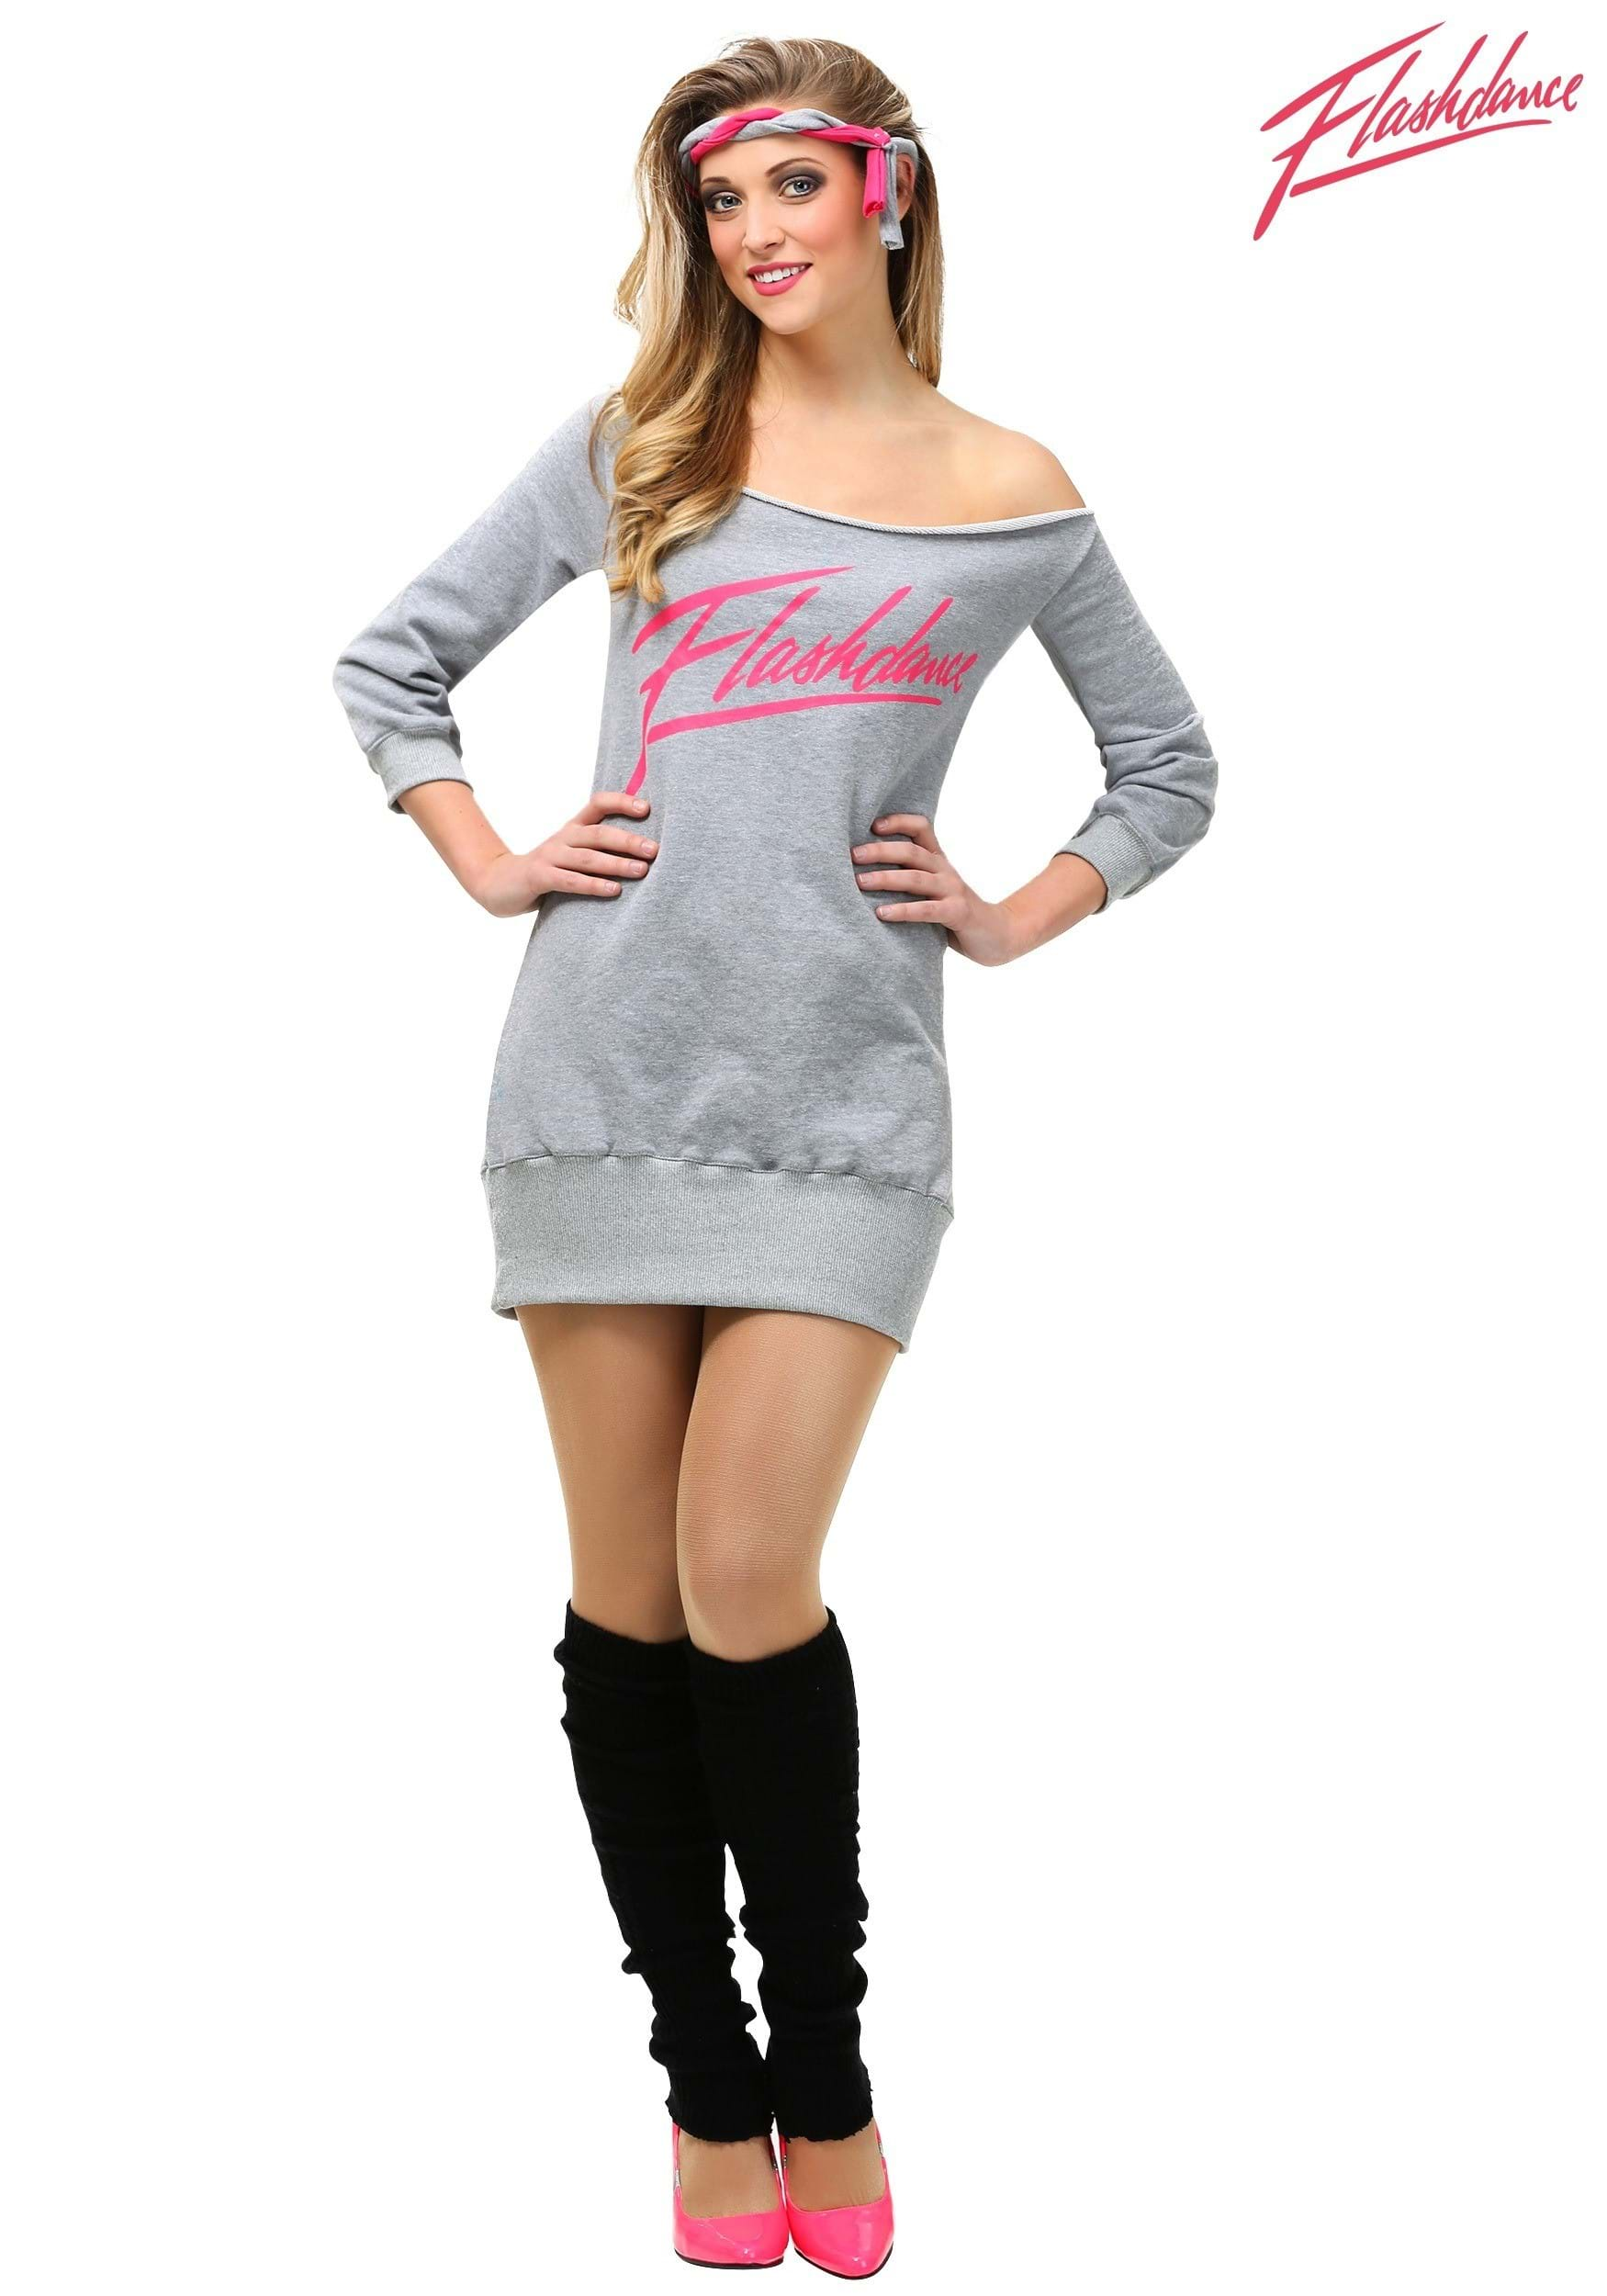 Flashdance Womenu0027s Costume  sc 1 st  Fun.com & Flashdance Costume for Women